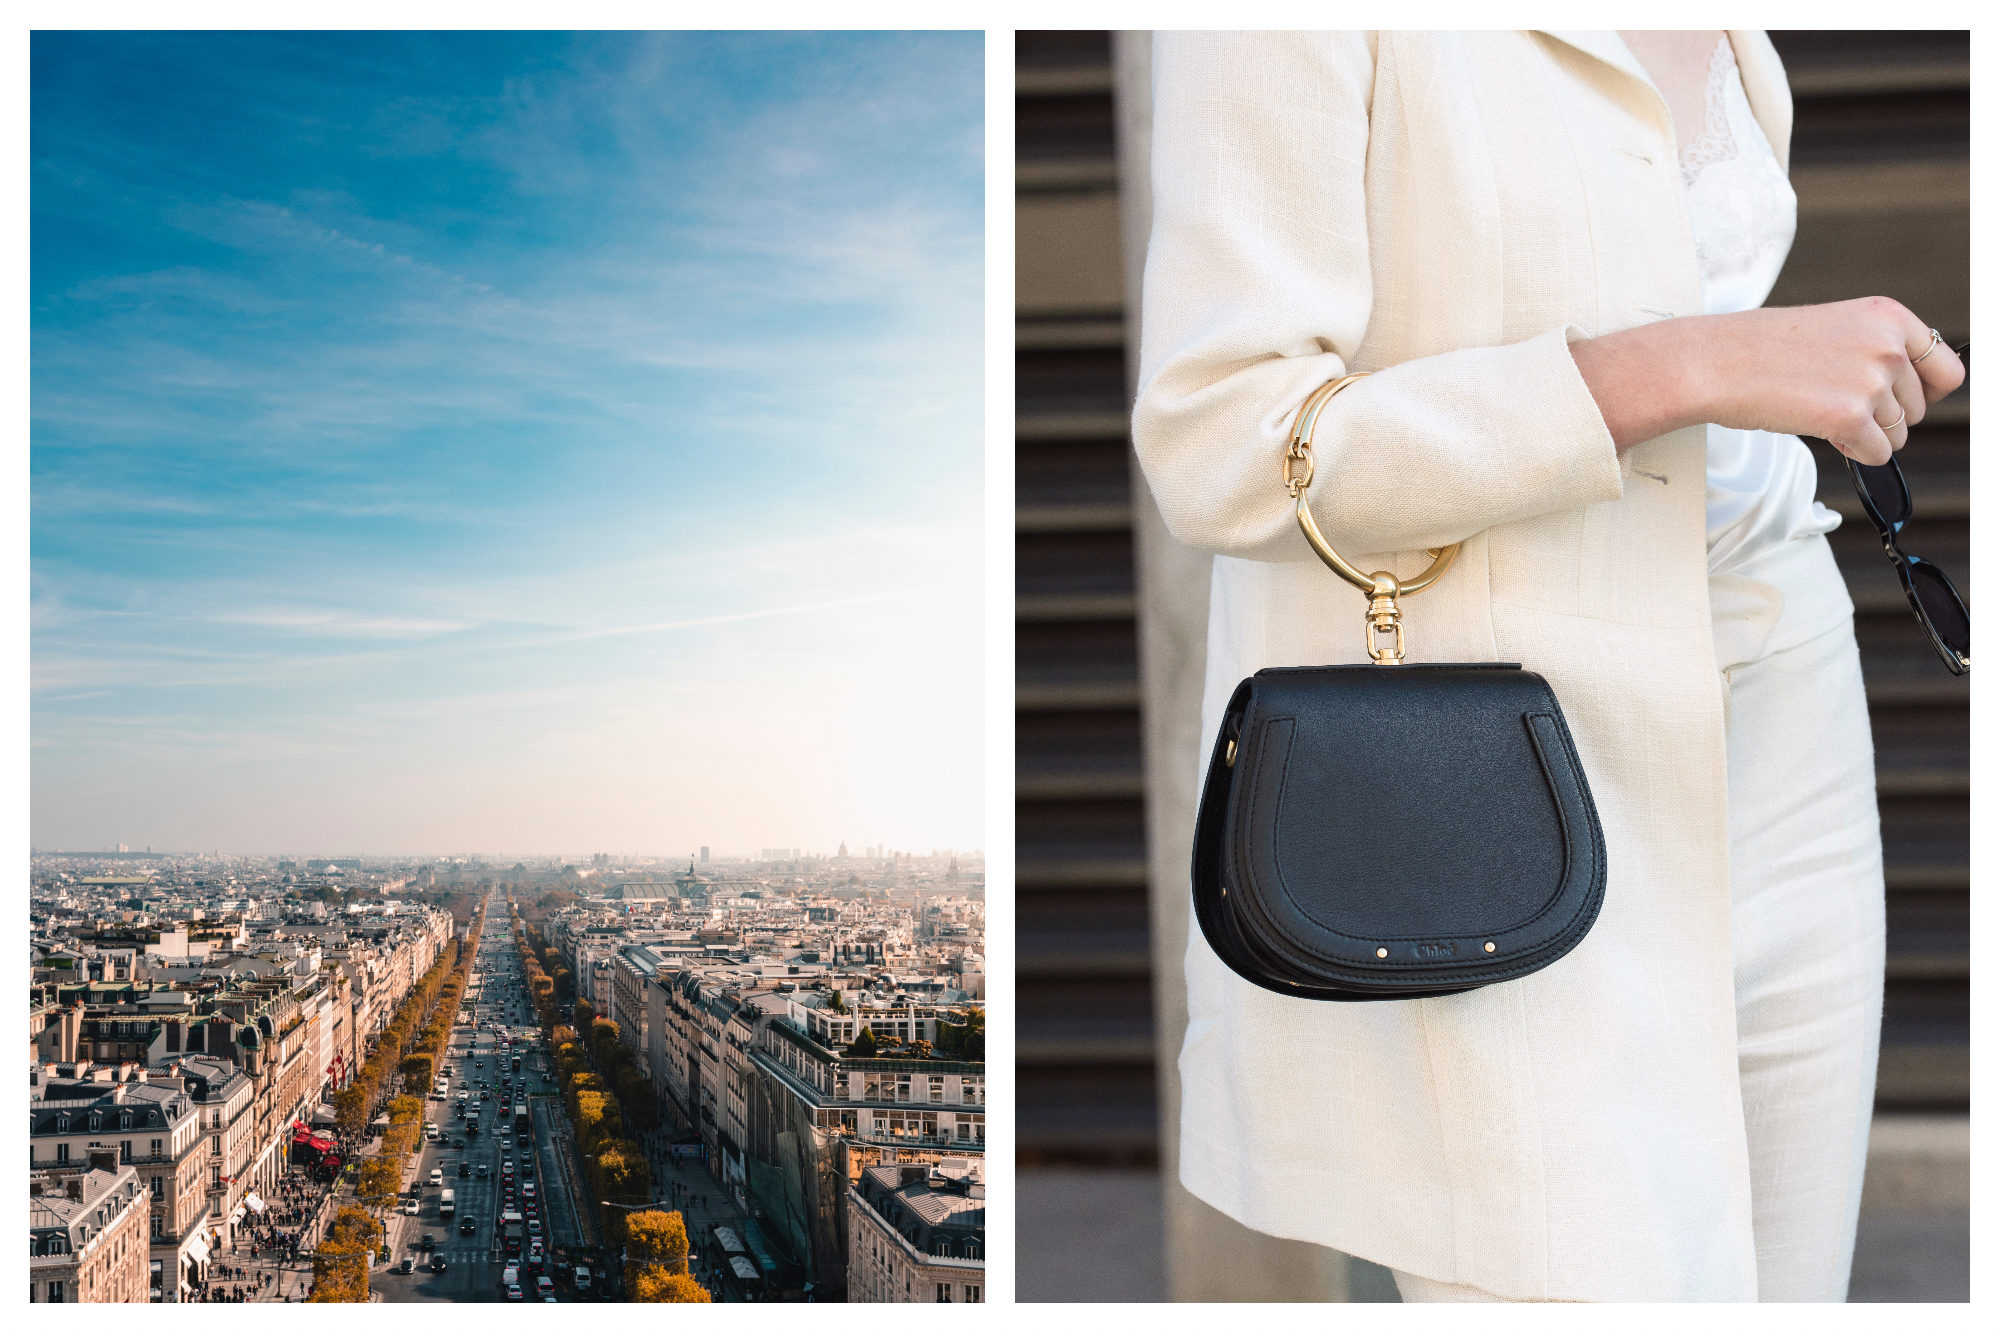 The view of the Champs Elysées in Paris against a blue sky (right). Where to shop for the right handbag in Paris like this smart black leather piece (right).